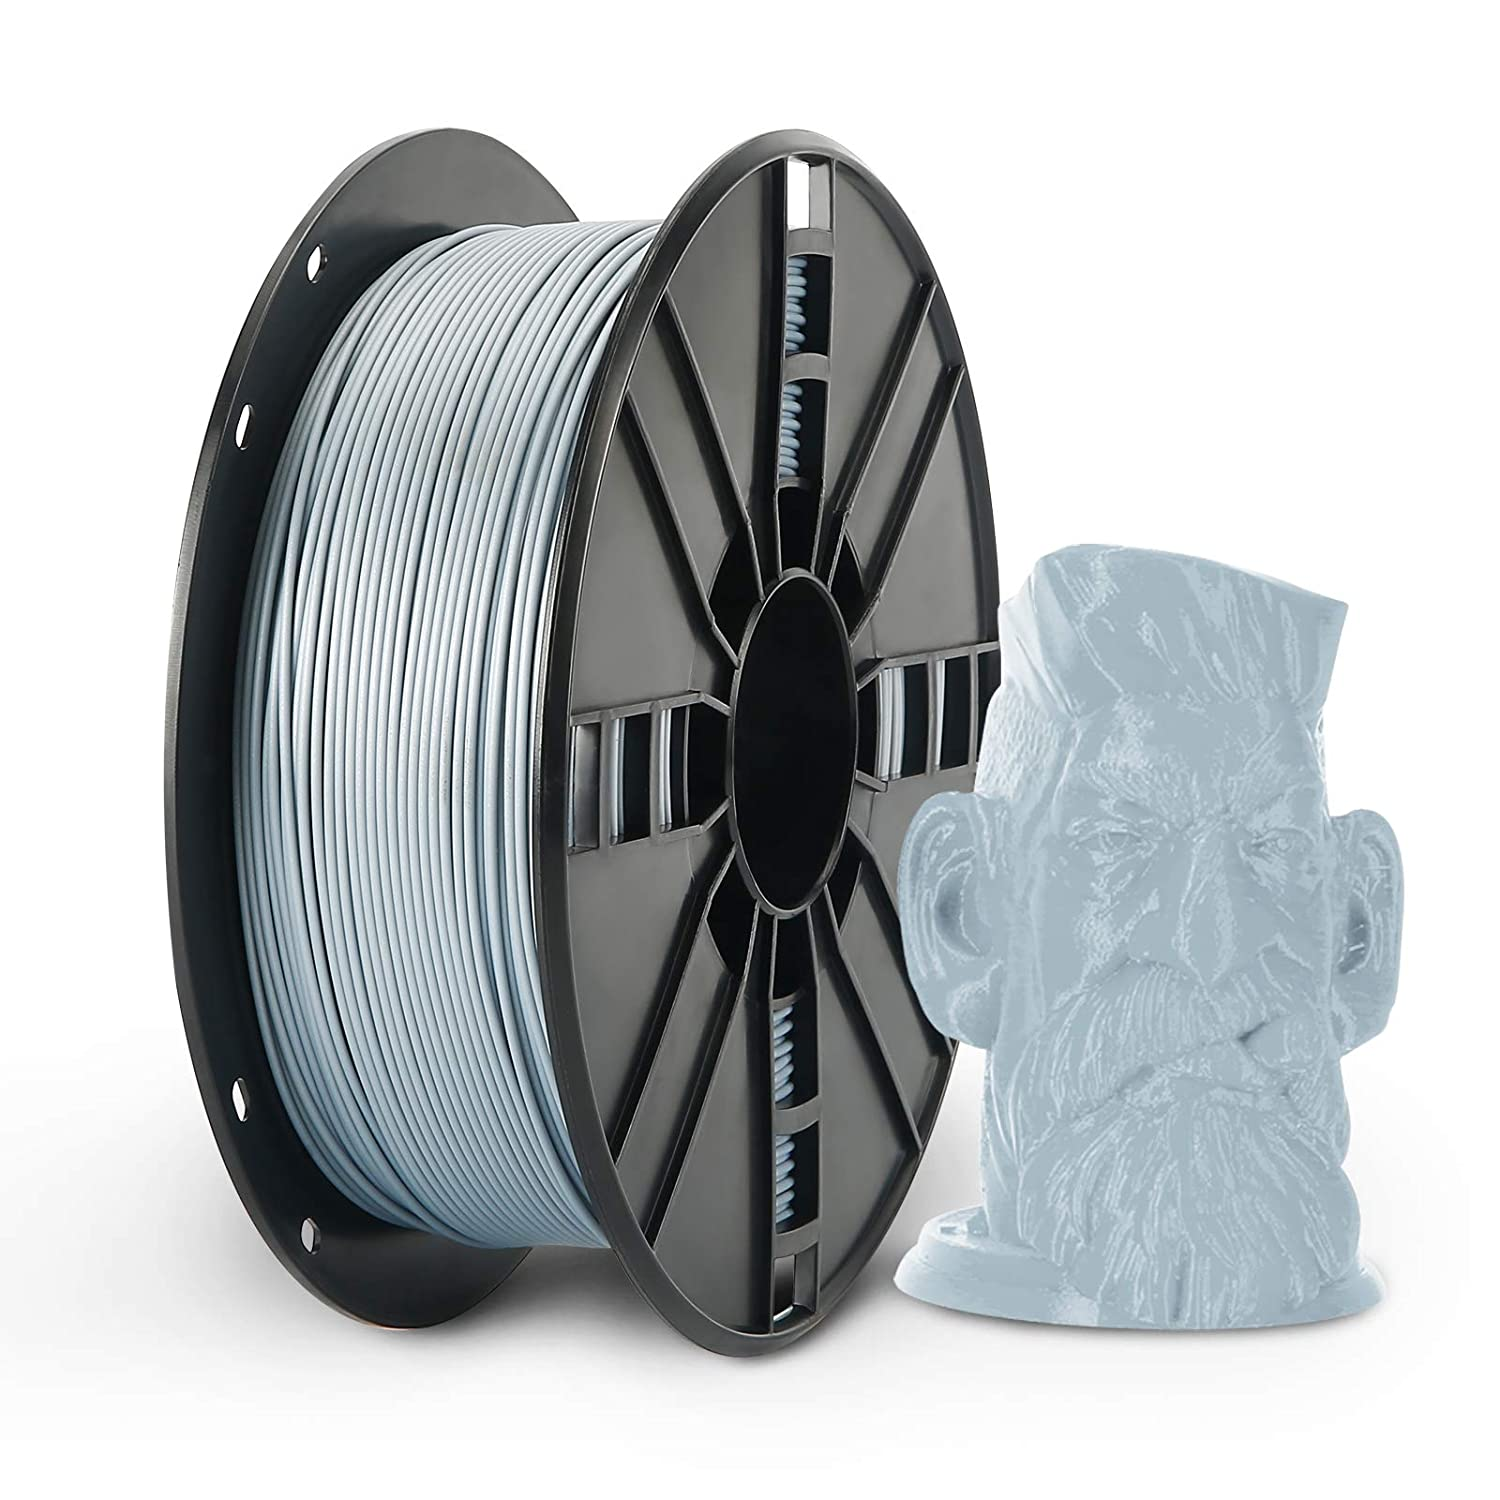 NOVAMAKER PLA Plus Large discharge sale PLA+ with 1.75mm Cleaning Filament Same day shipping